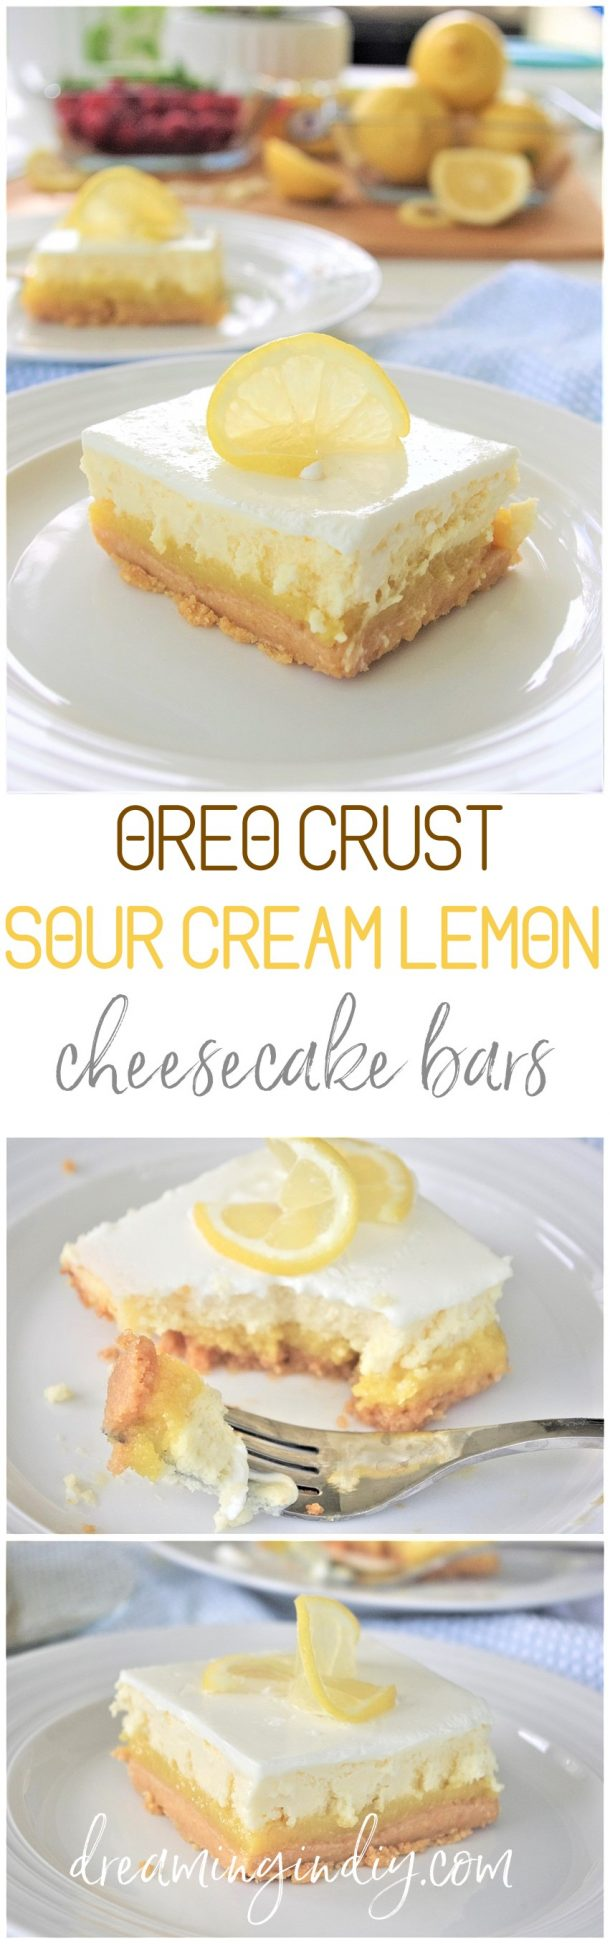 Lemon Sour Cream Cheesecake Dessert Bars with Lemon Oreo Crust - Easy Layered Treats Yummy Recipe via Dreaming in DIY